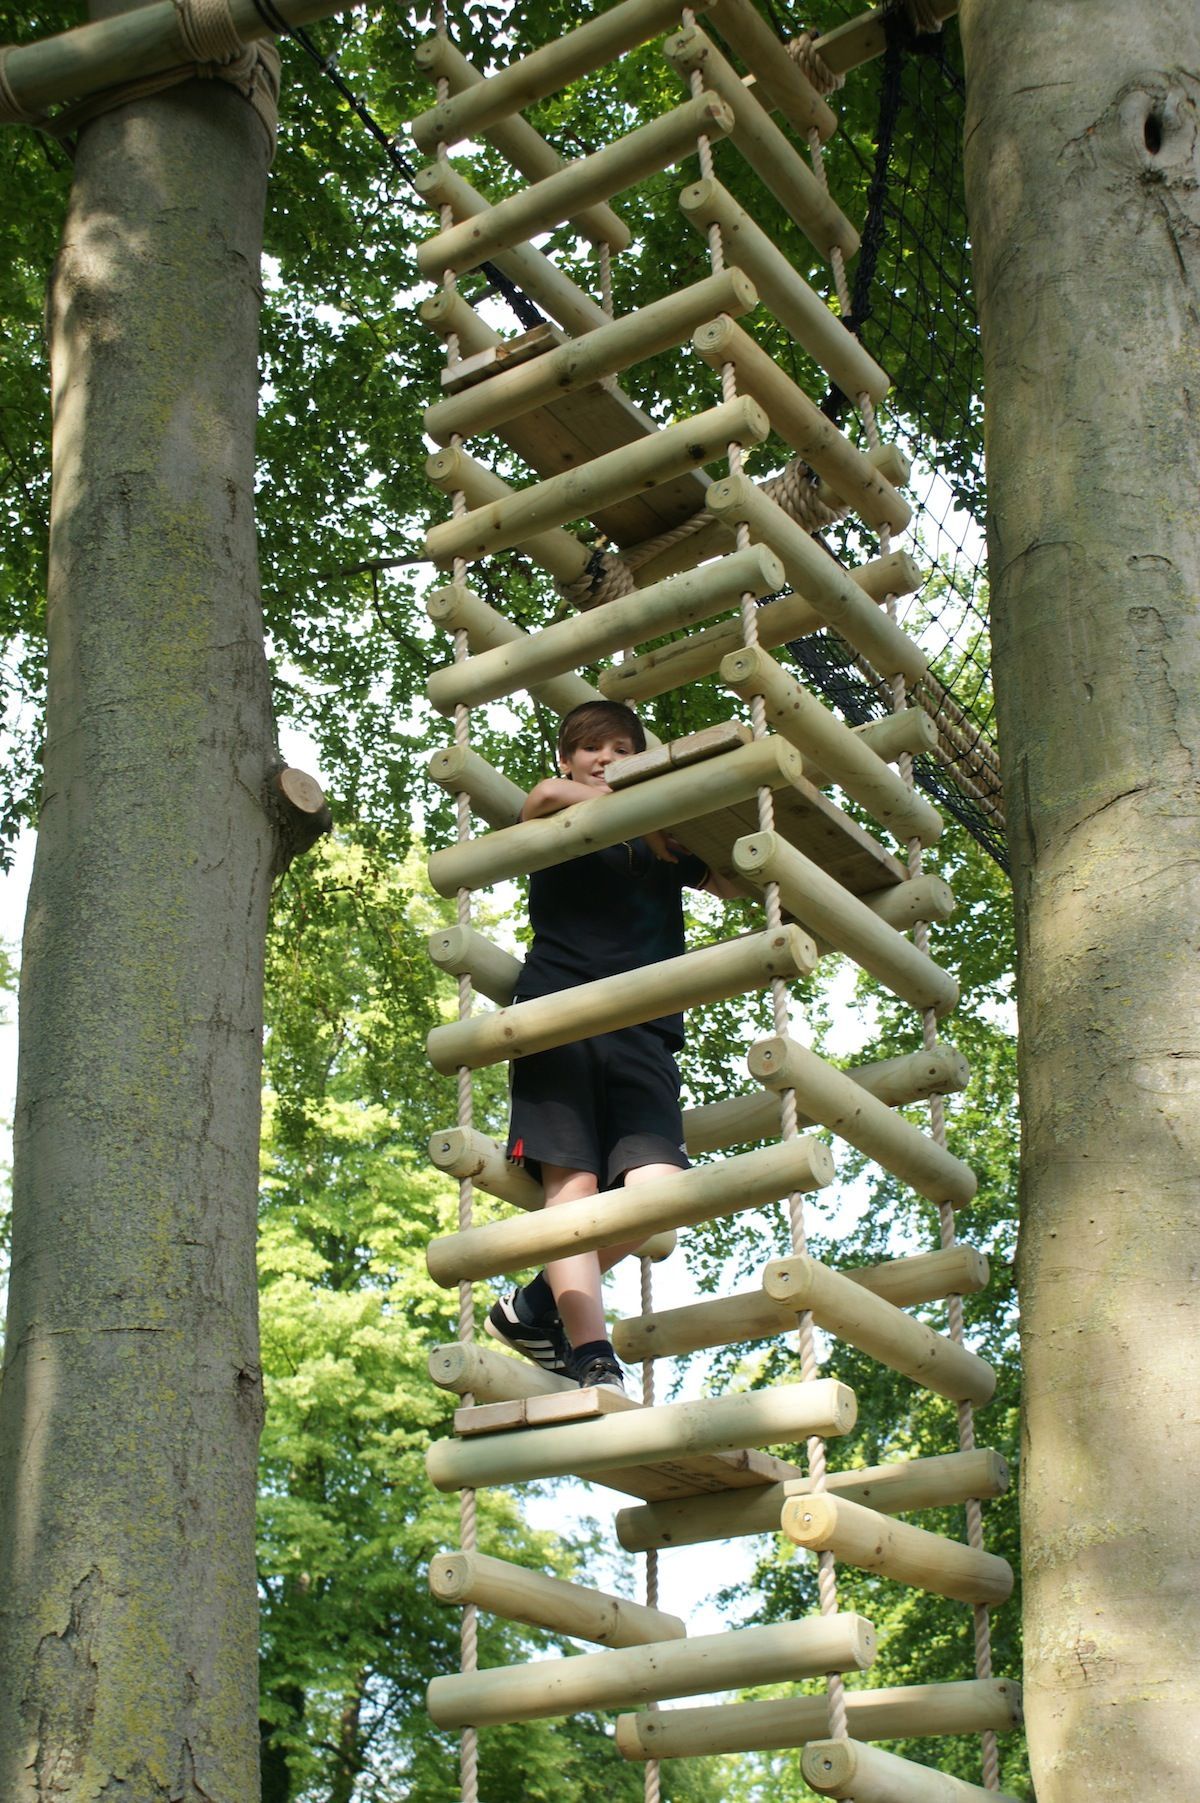 4 sided Rope Ladders for treehouses by Treehouse Life a world away from everyday